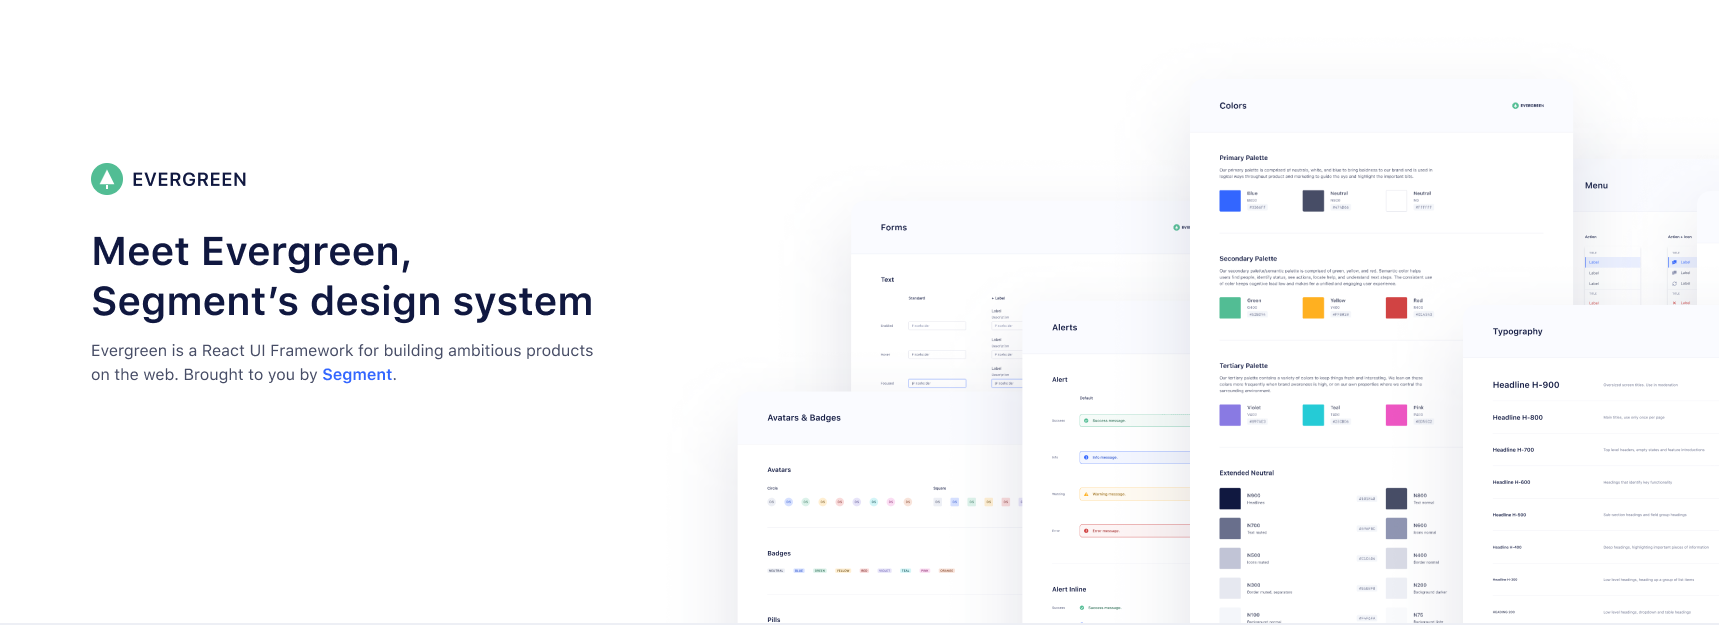 Evergreen, A Design System for the Web. Evergreen is a React UI Framework for building ambitious products on the web. Brought to you by Segment.